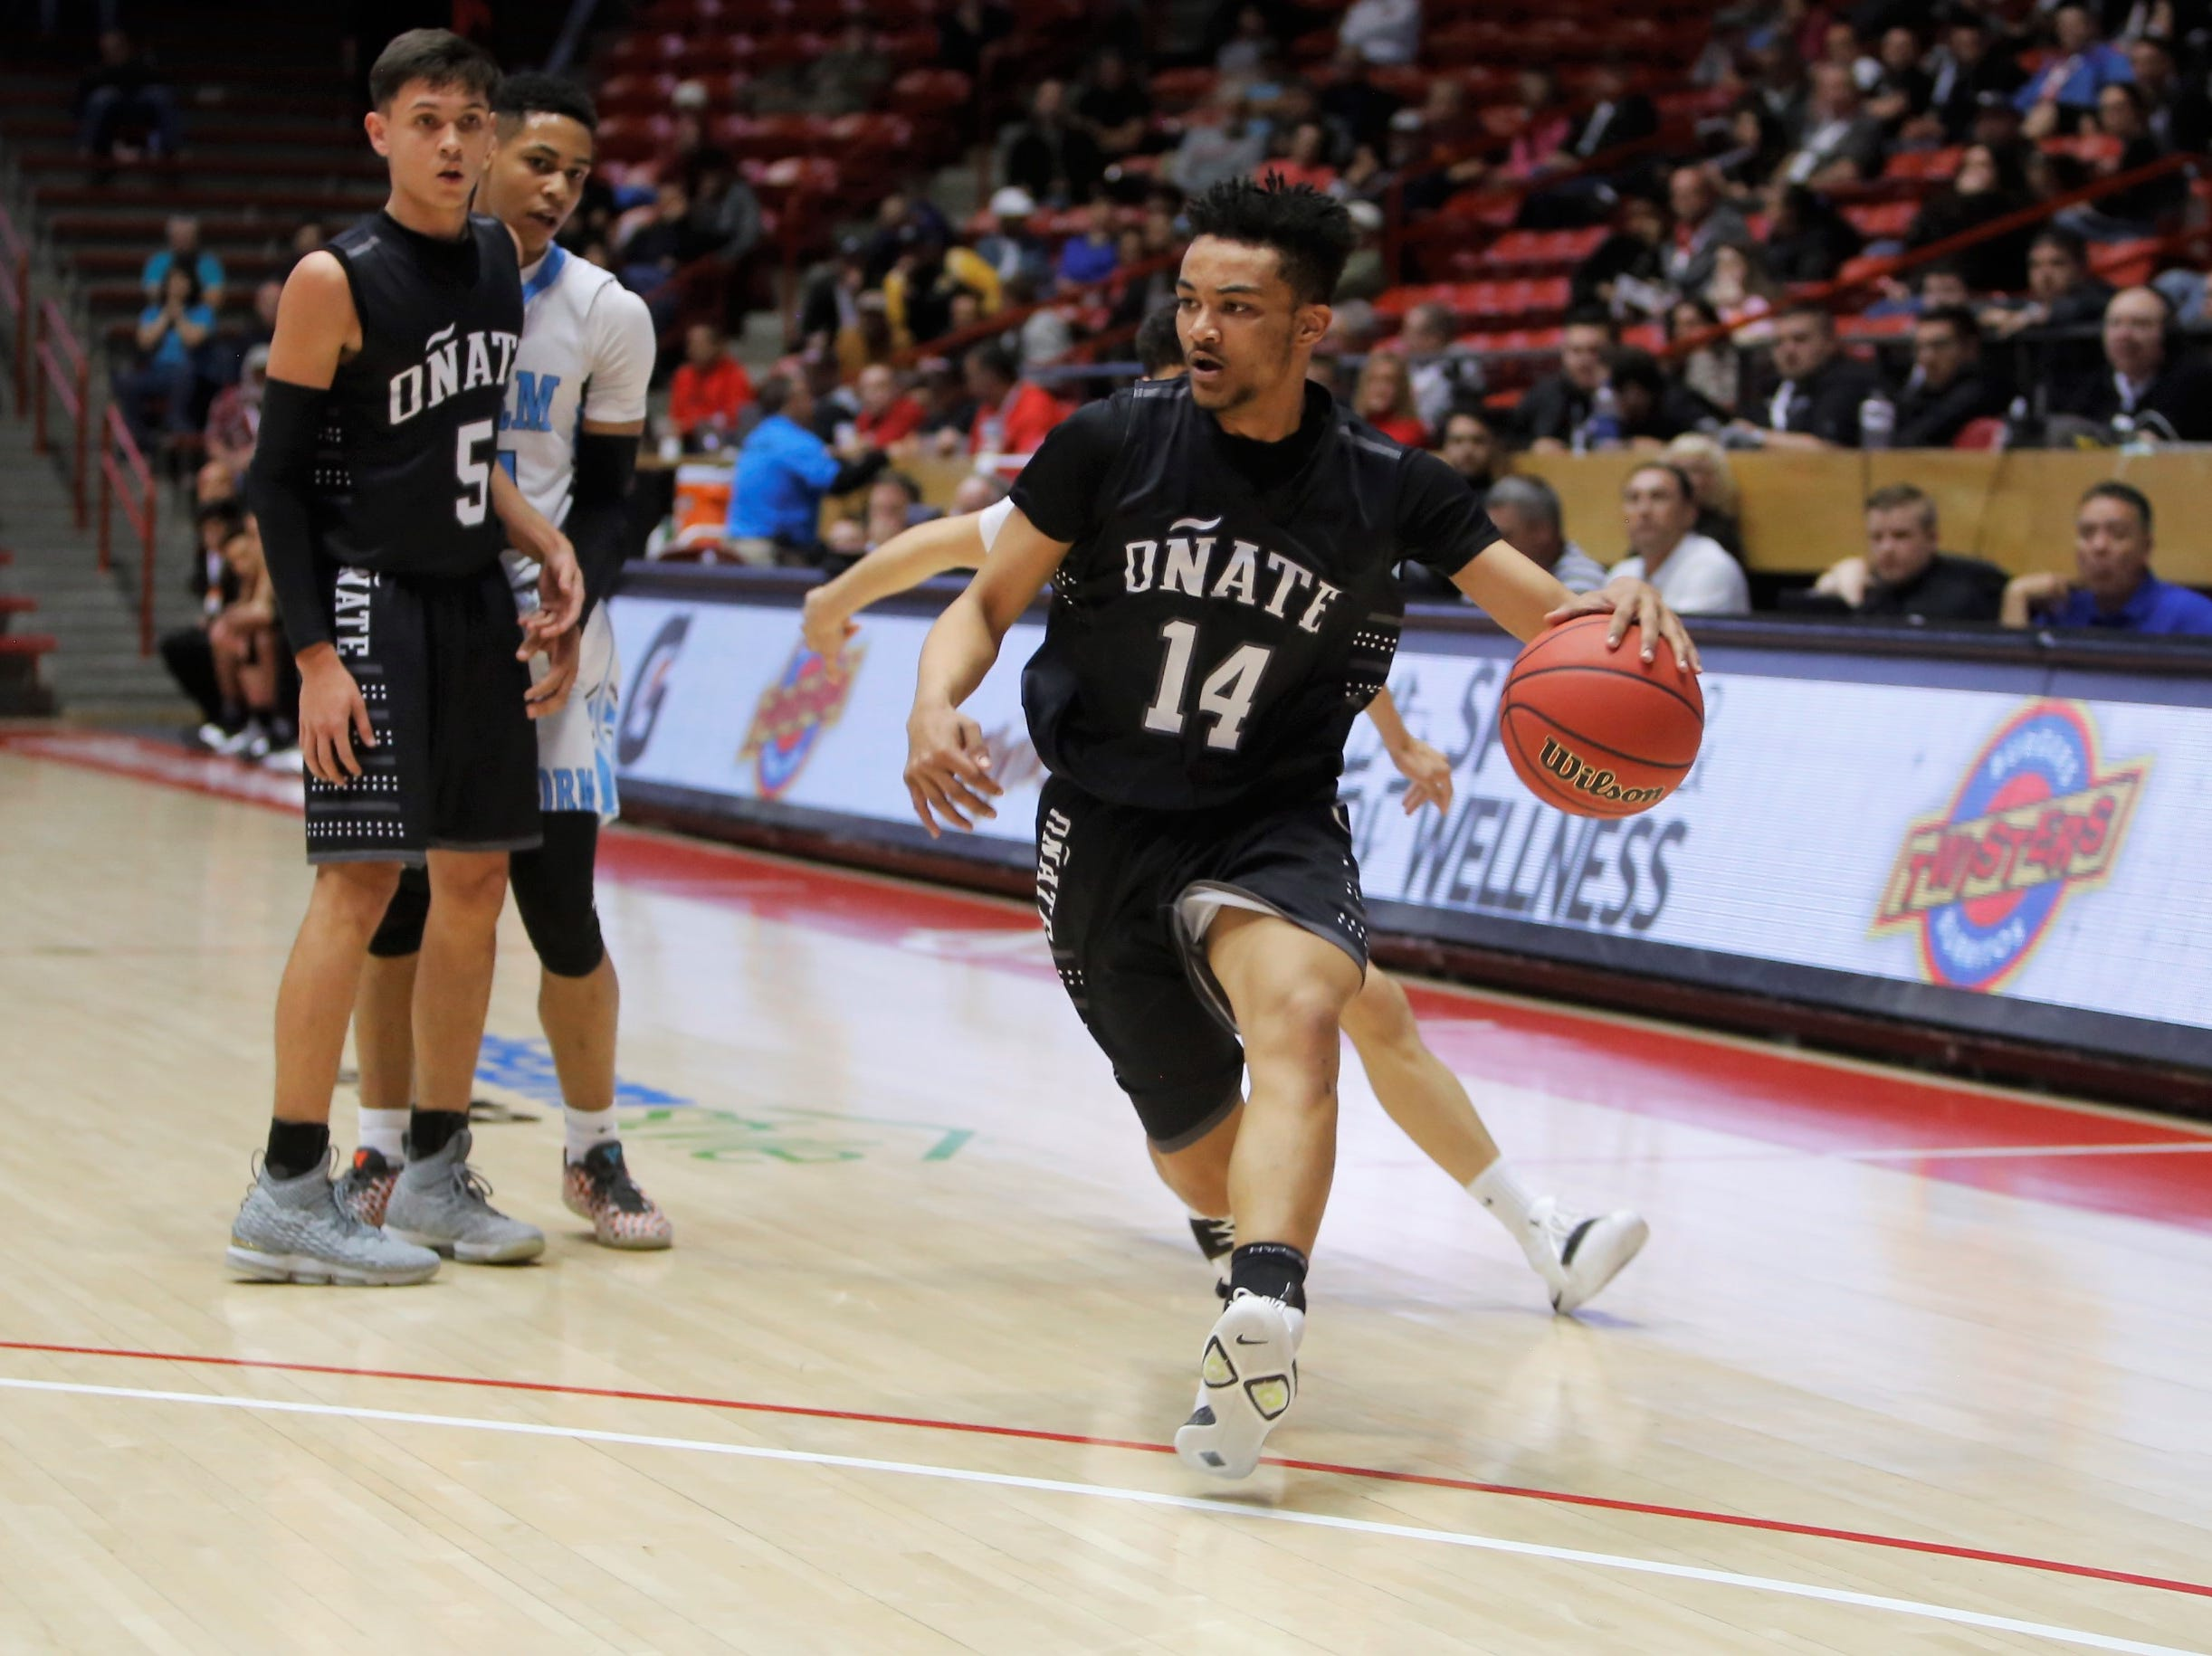 Oñate's Joshua Phillips drives in from the top left edge of the wing against Cleveland during Wednesday's 5A state quarterfinals at Dreamstyle Arena in Albuquerque.